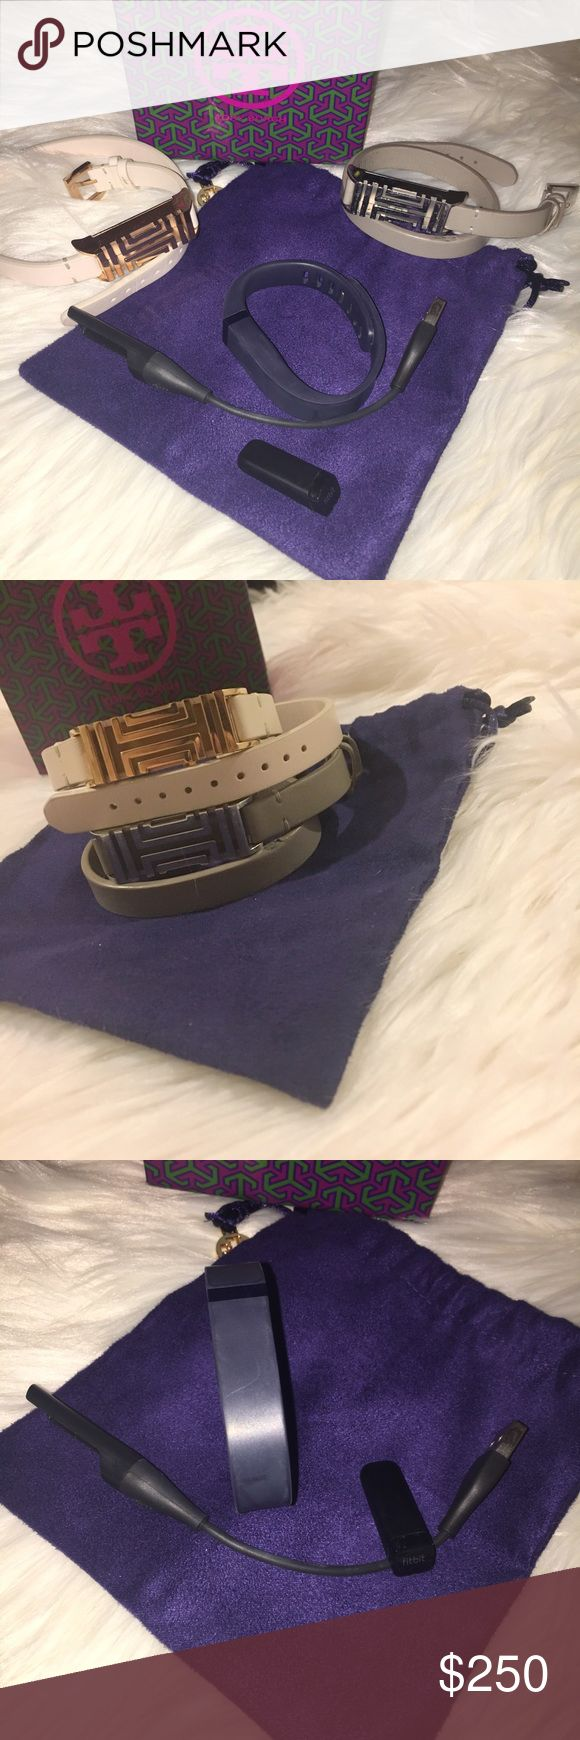 Tory Burch FitBit Bundle Bundle of 2 Tory Burch Fitbit's, Fitbit, Fitbit sports band, and Fitbit charger.   Rose gold & lightoak band: brand new never worn. NWOT. Retail; $195  Silver & French gray band: worn everyday for about 3 months. Used. See photos. Retail; $195  Navy Blue Fitbit sports band: worn maybe 5 times, if that. FitBit Flex: worn for little over a year off an on. Retail; $100+tax.  FitBit charging cord included!  Willing to separate pieces. Plz LMK if you have any questions…